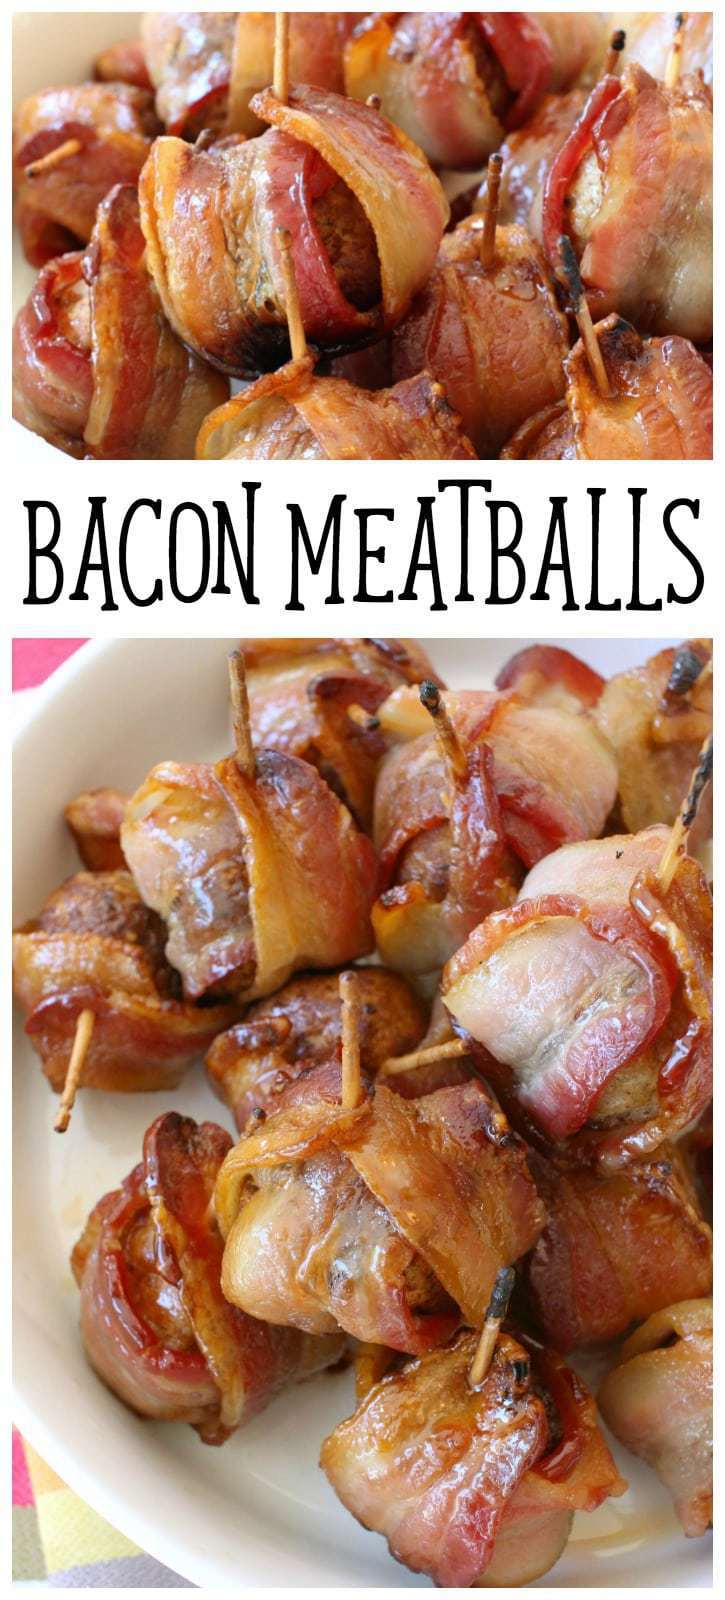 Bacon Meatball appetizers made with just 3 ingredients and unbelievably good flavor! Quick and easy appetizer recipes perfect for parties.